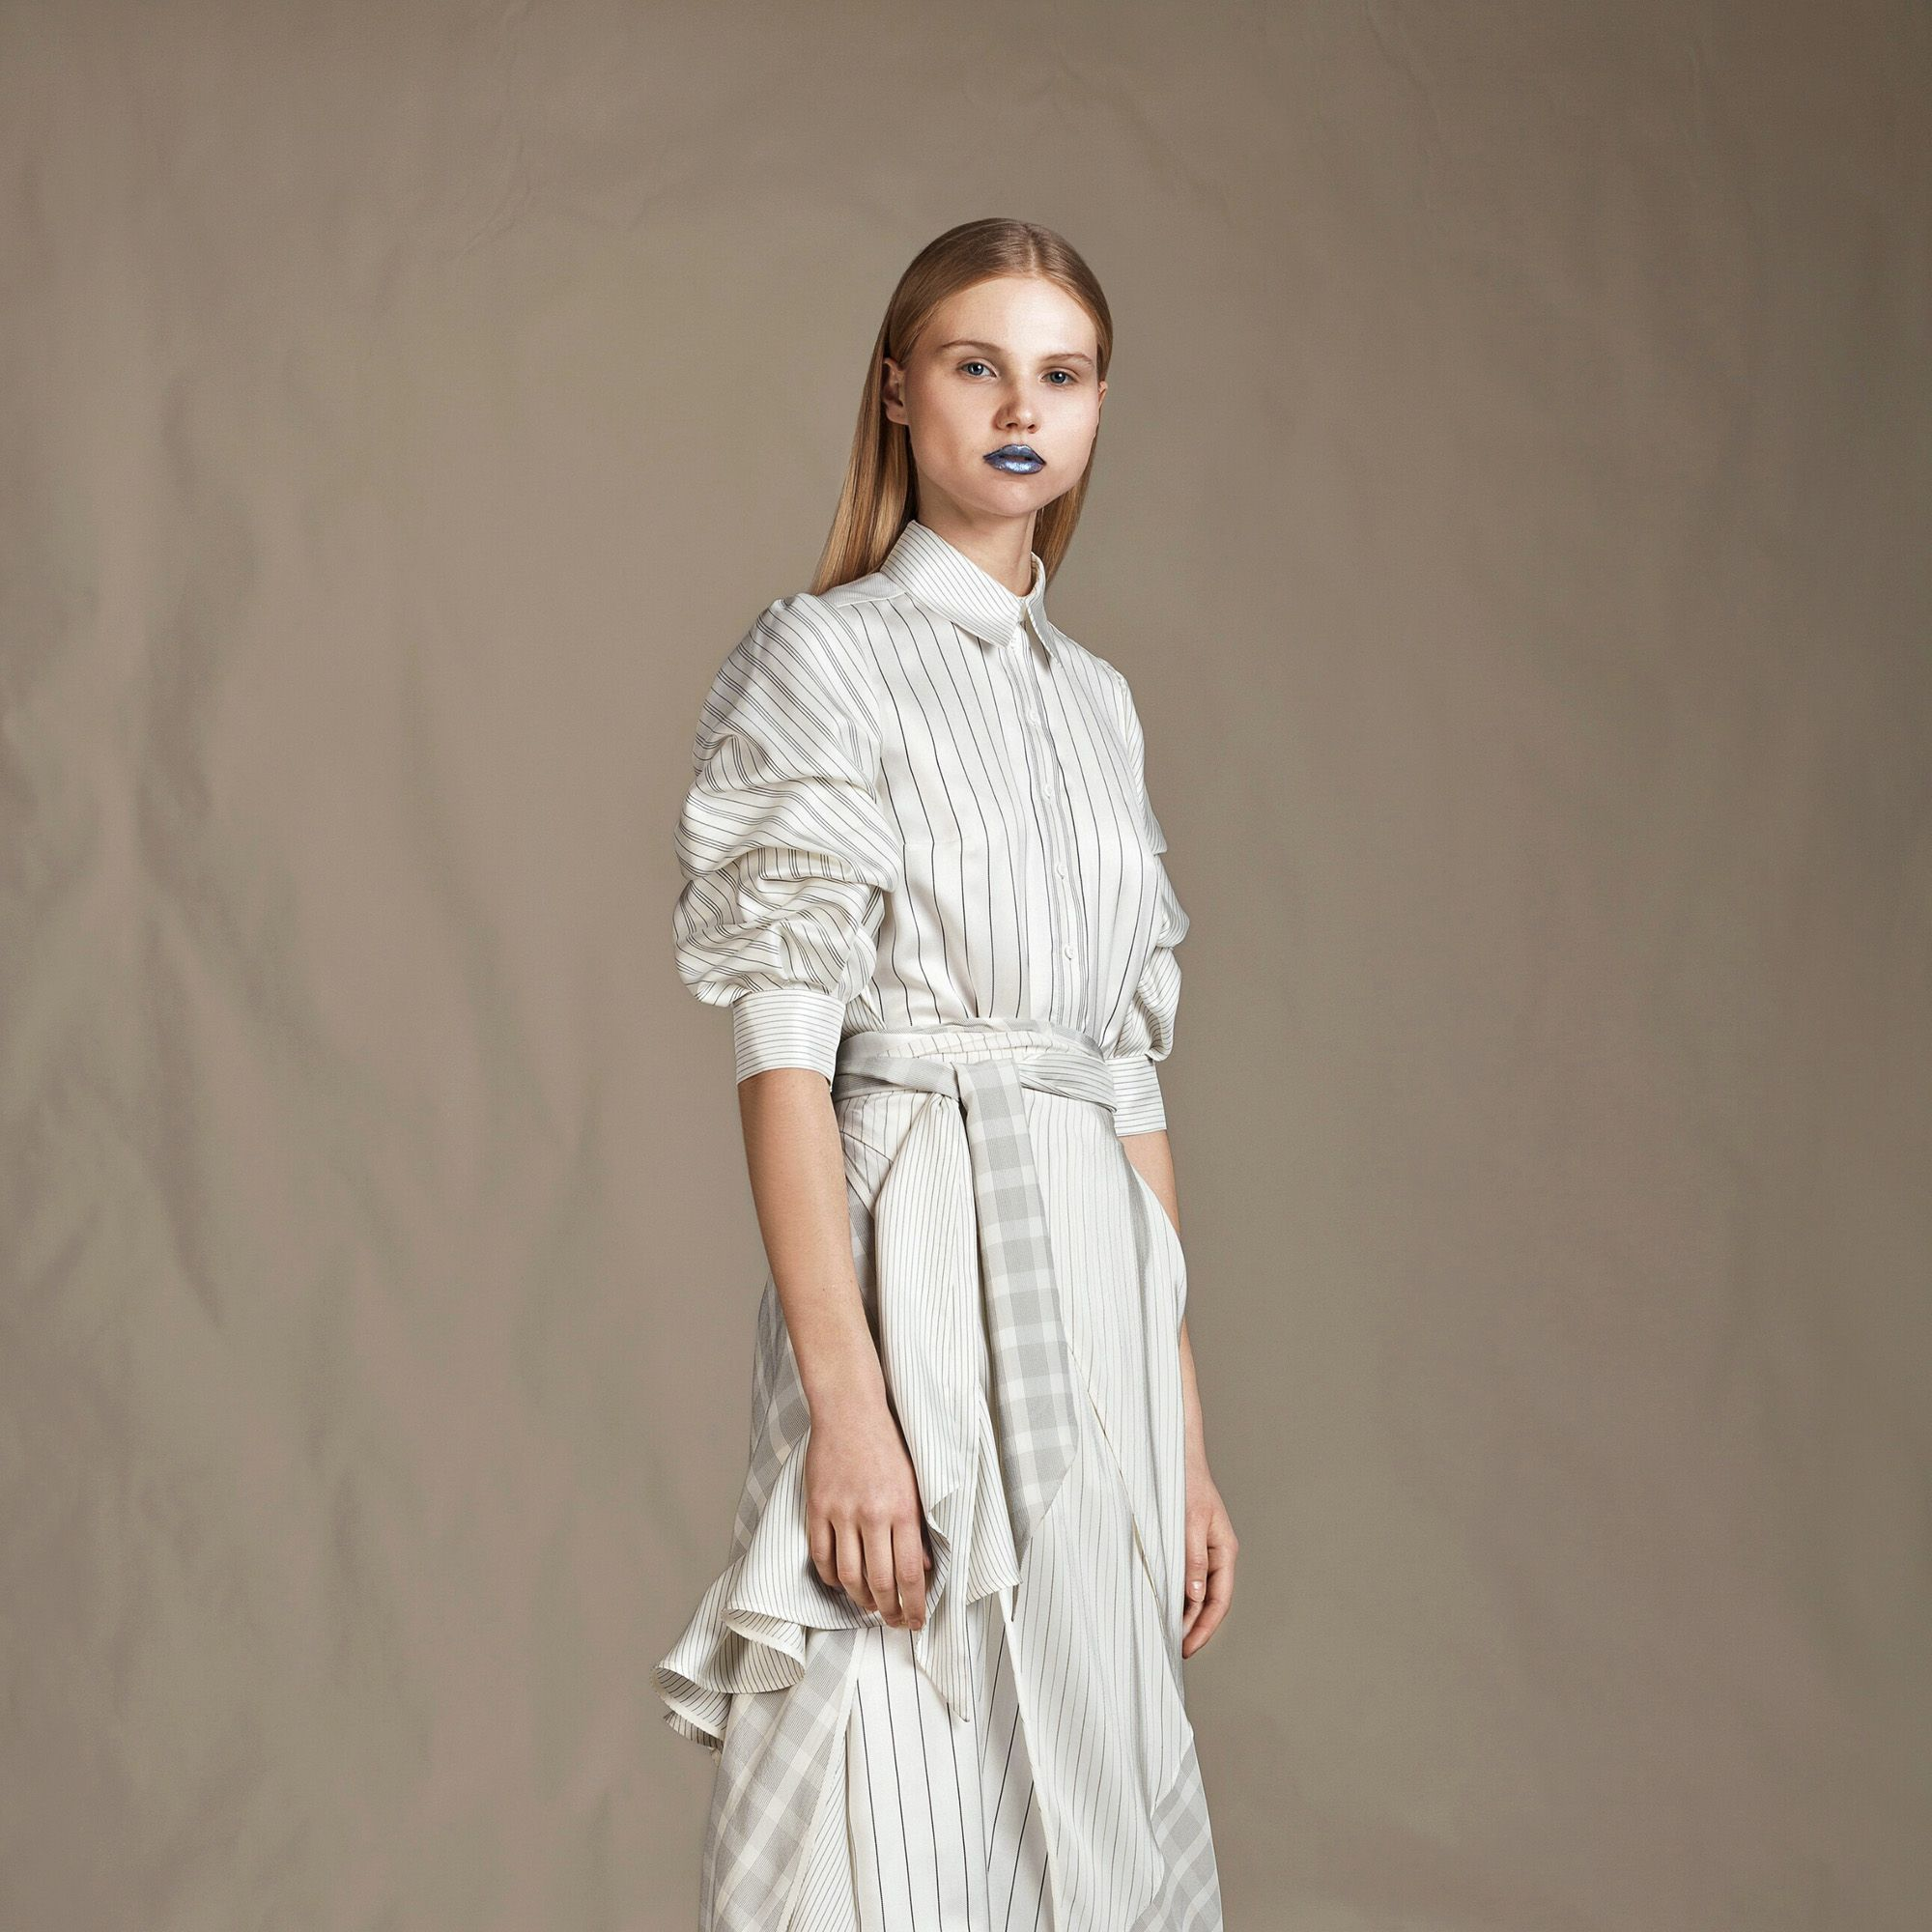 <p>With sculptural shapes and inventive layering, Lumelsky's artisanal creations take their cue from the plaids worn by Scottish Highlanders and are designed to be styled in mulptiple ways. </p>